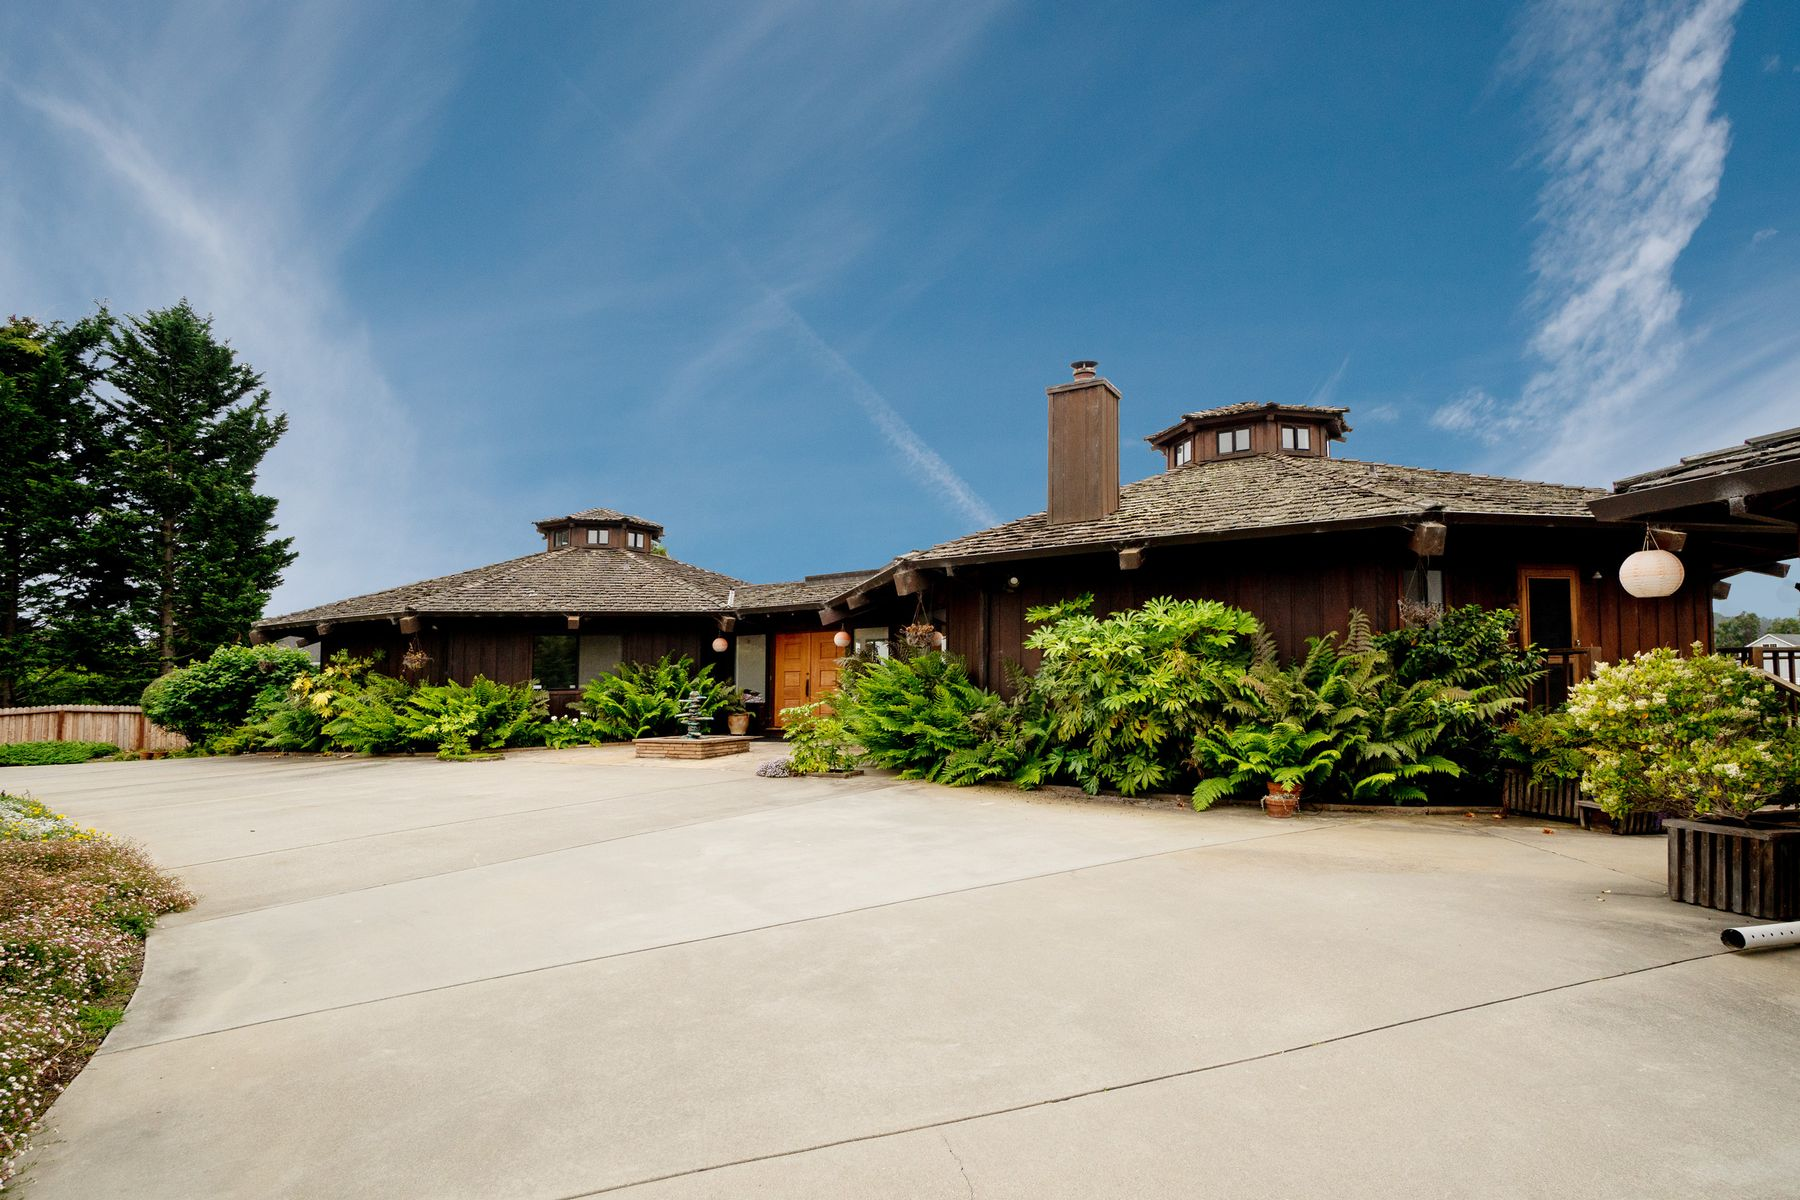 Single Family Homes for Sale at Timeless Contemporary 19220 Pioneer Place Aromas, California 95004 United States